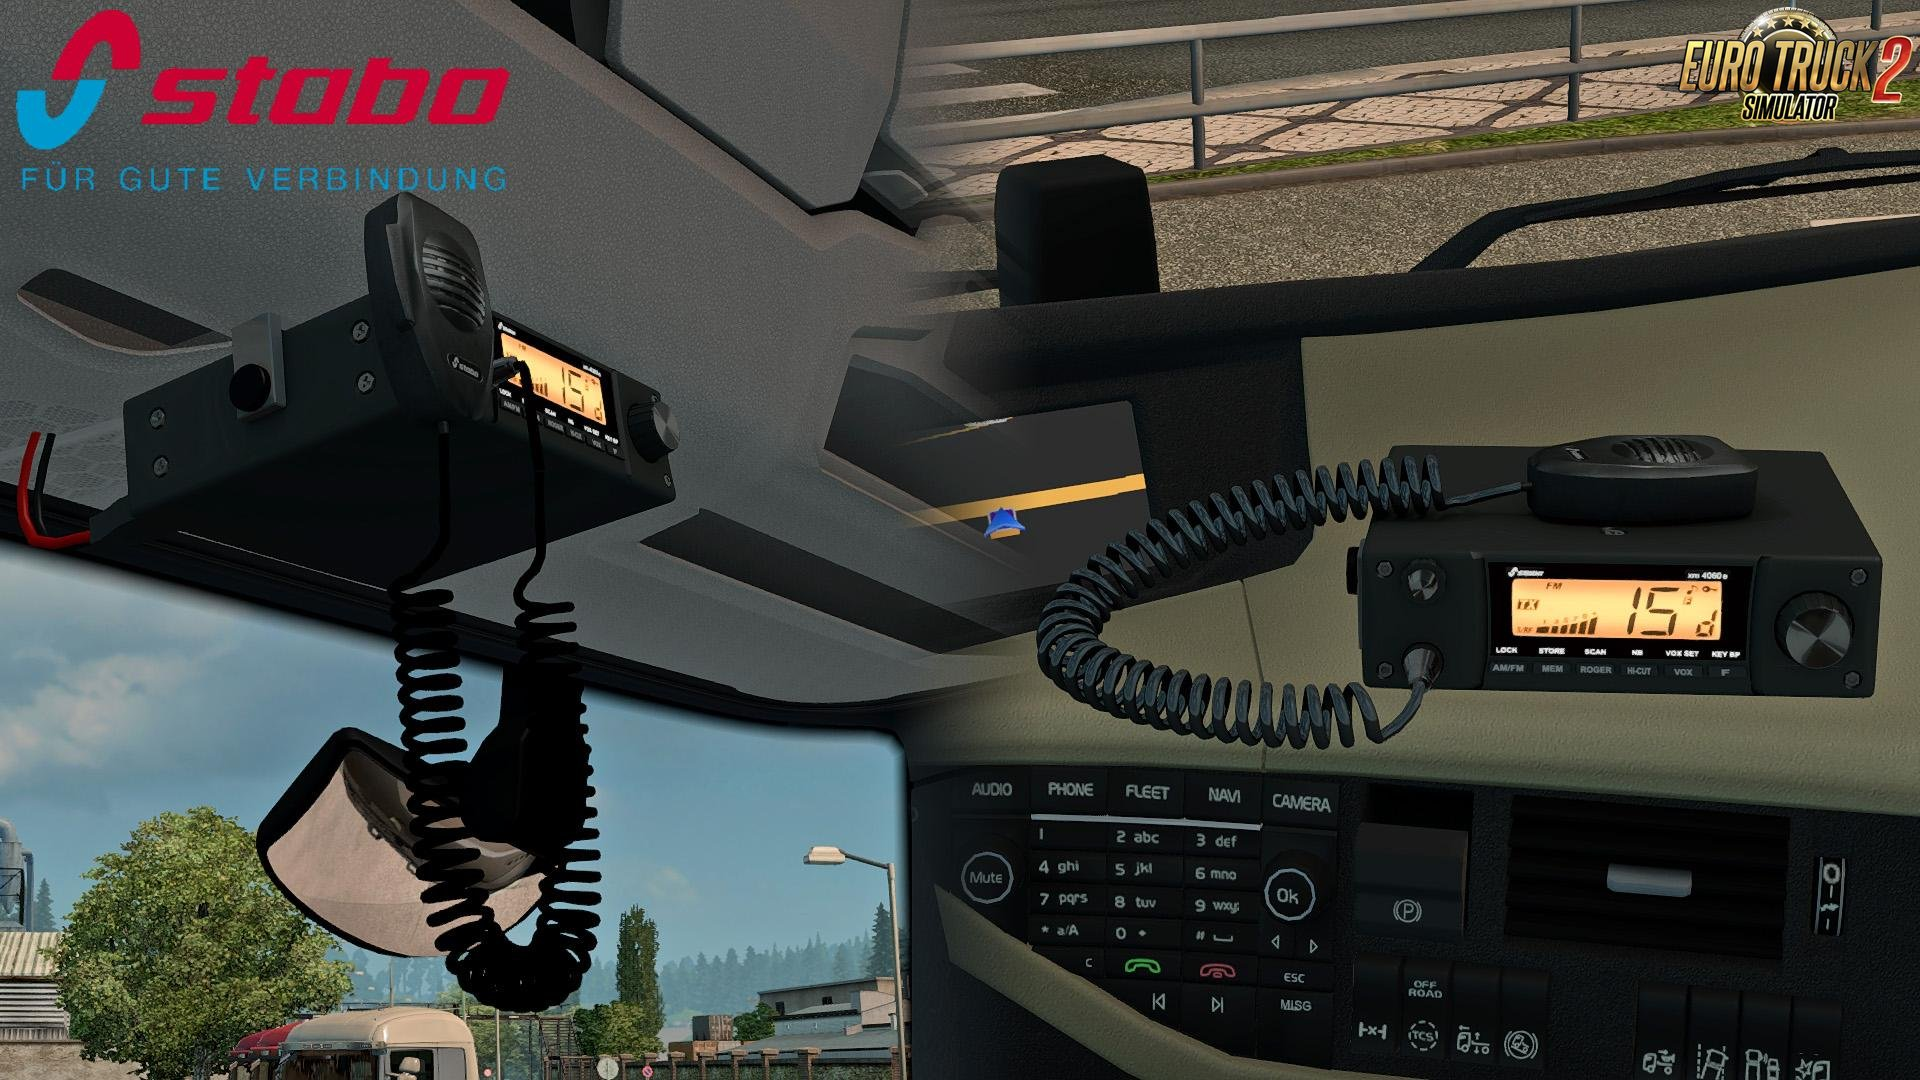 Stabo XM4060E CB Radio v1.4 for Ets2